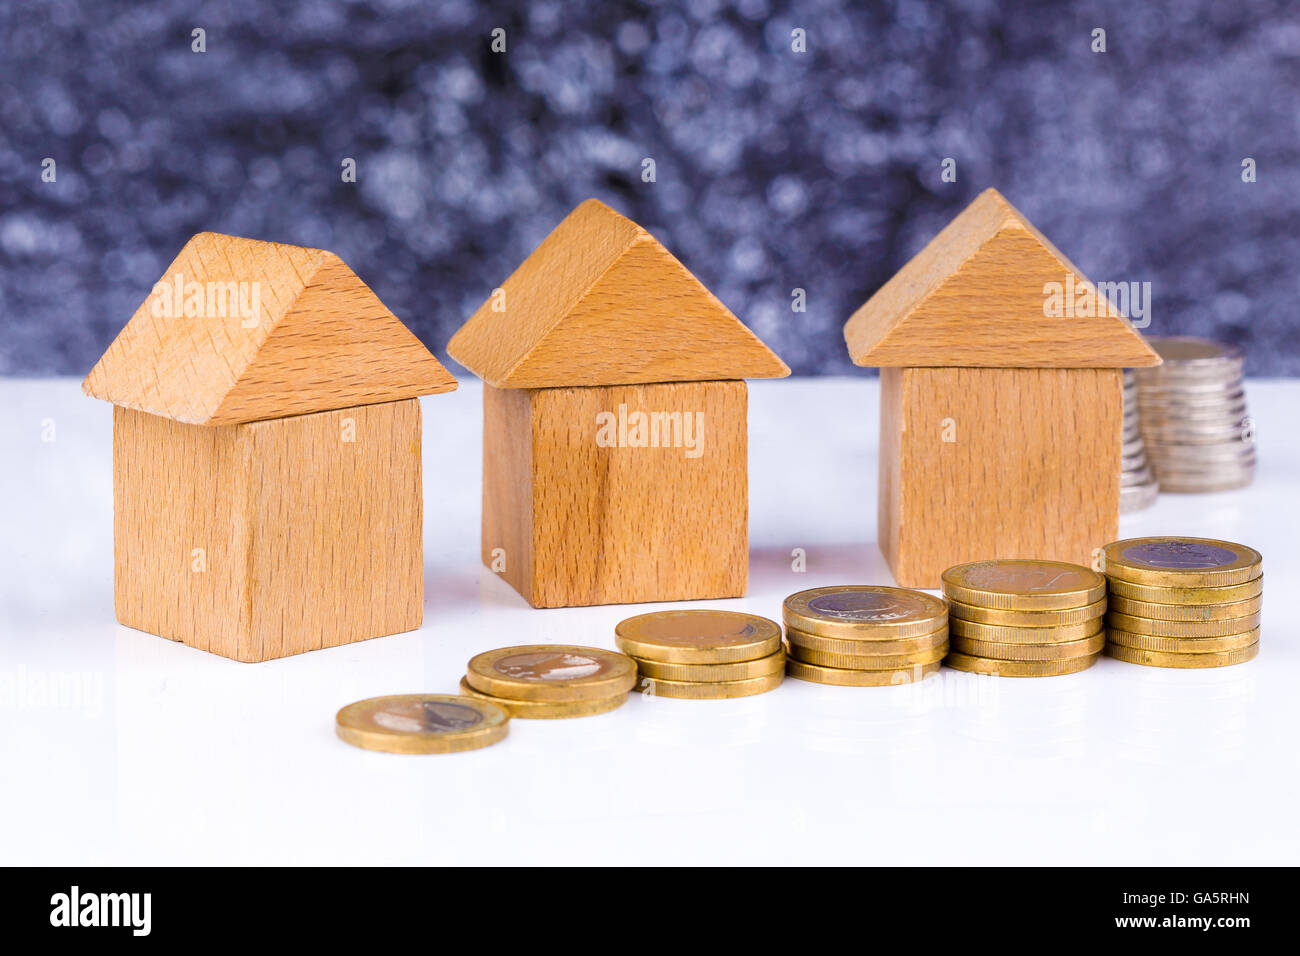 Wooden block houses and coin stacks in a row - Stock Image